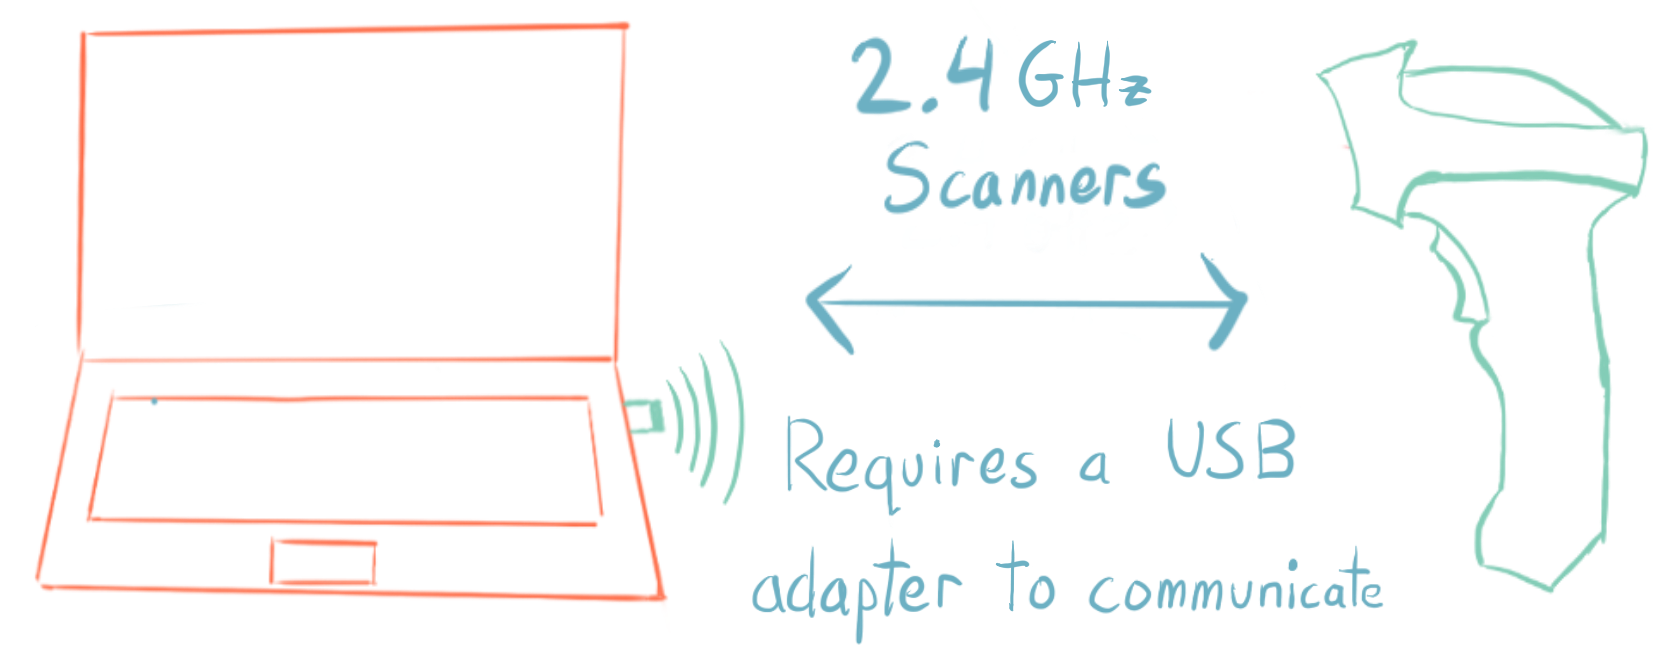 2.4 GHz Price Scanners require a USB adapter to communicate